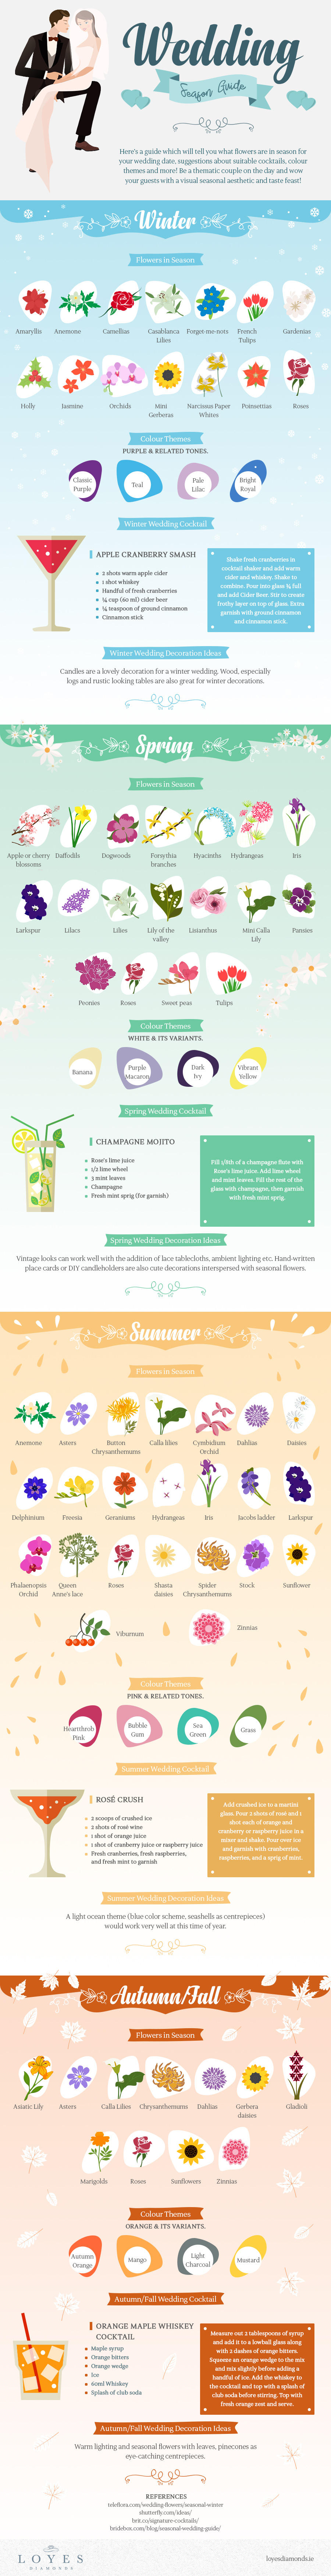 Wedding-Seasons-What-You-Need-to-Know-Infographic.jpg